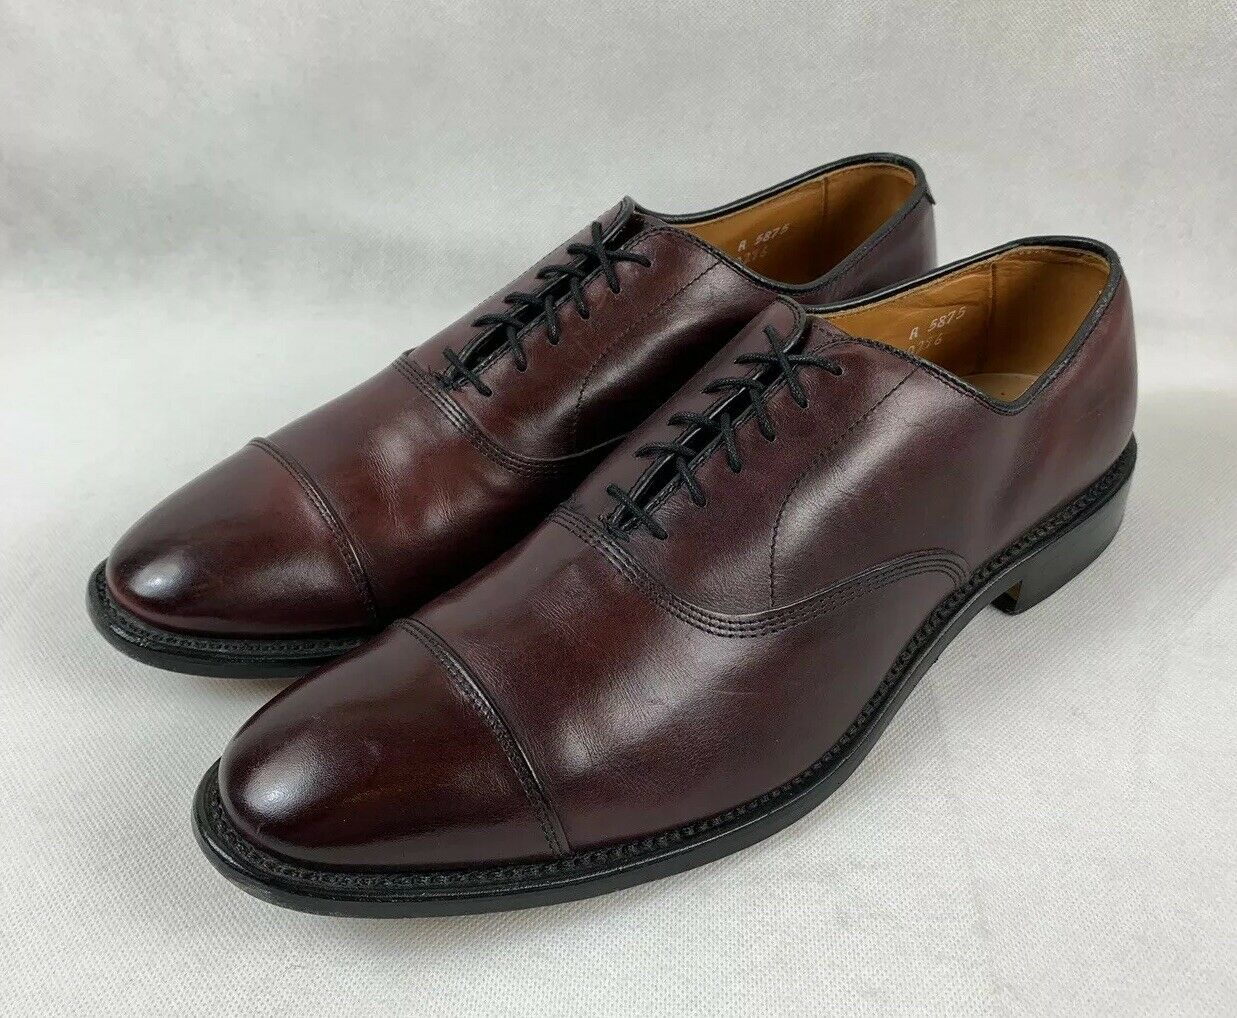 Allen Edmonds Park Avenue Oxblood Cap-Toe Oxfords Size 11 A